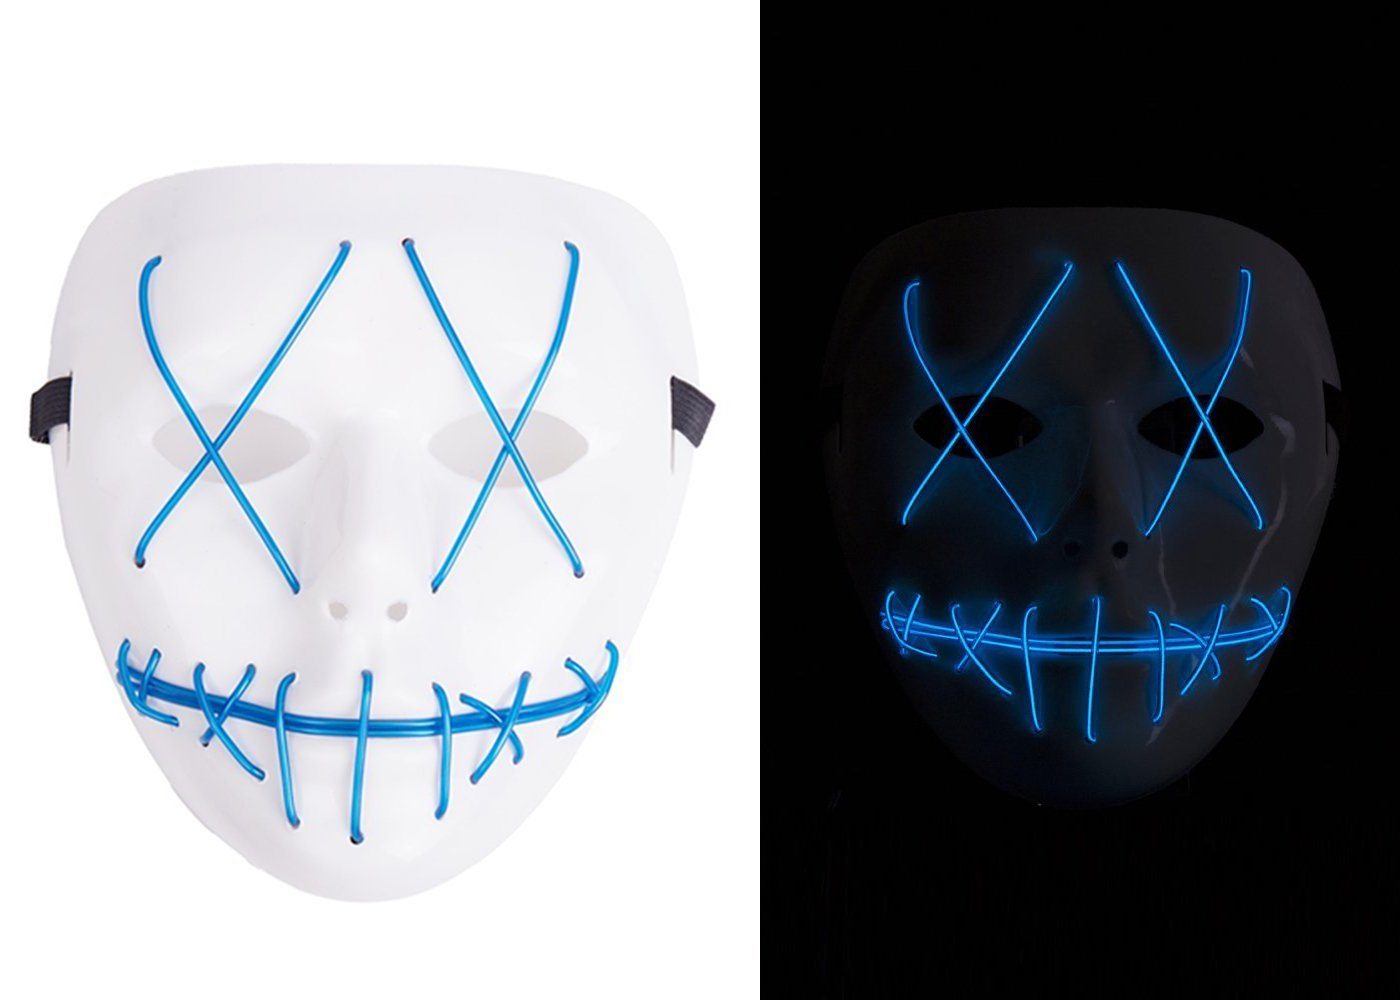 Buy NIGHT-GRING Frightening EL Wire Halloween Cosplay Led Mask Light ...